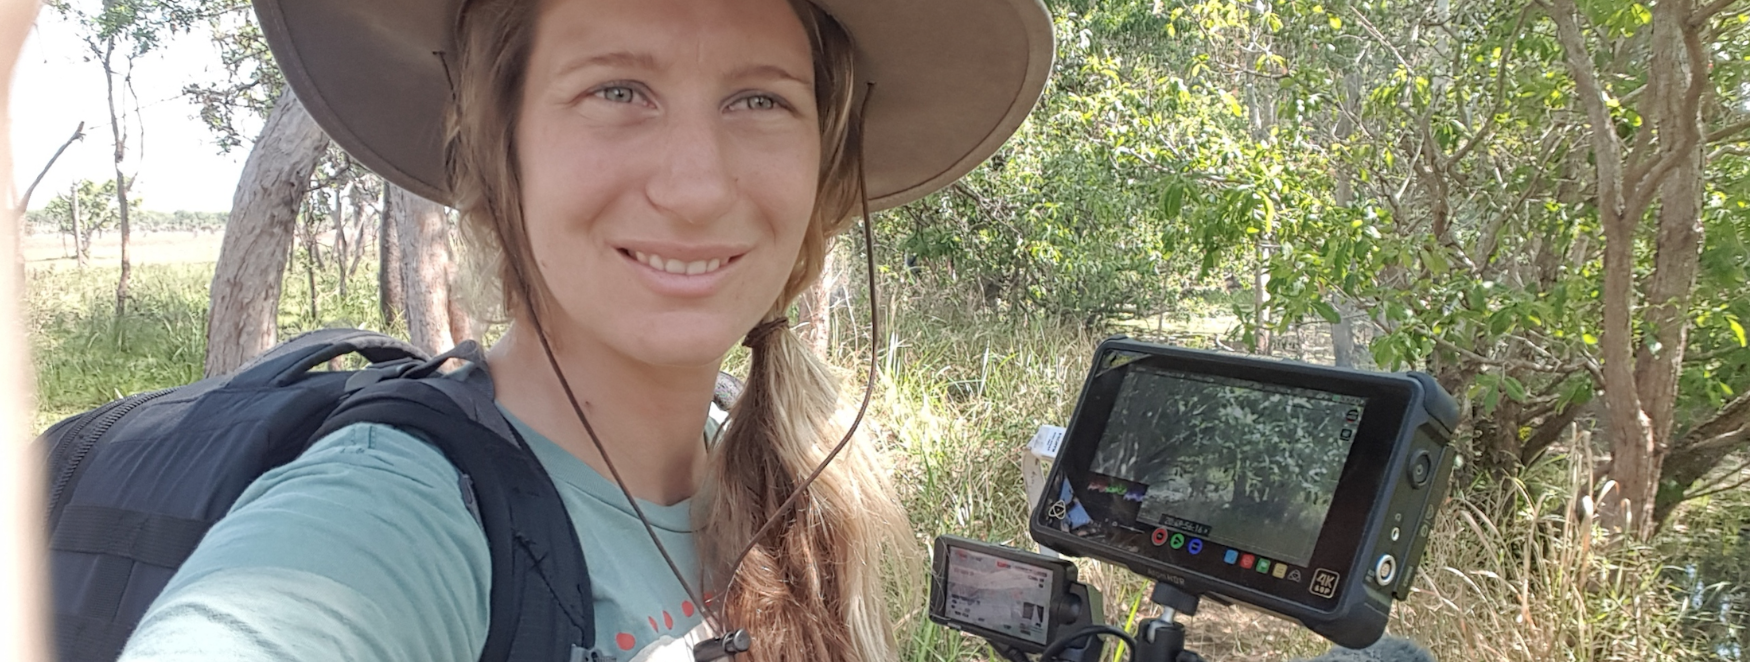 cassie decolling female adventure filmmaker